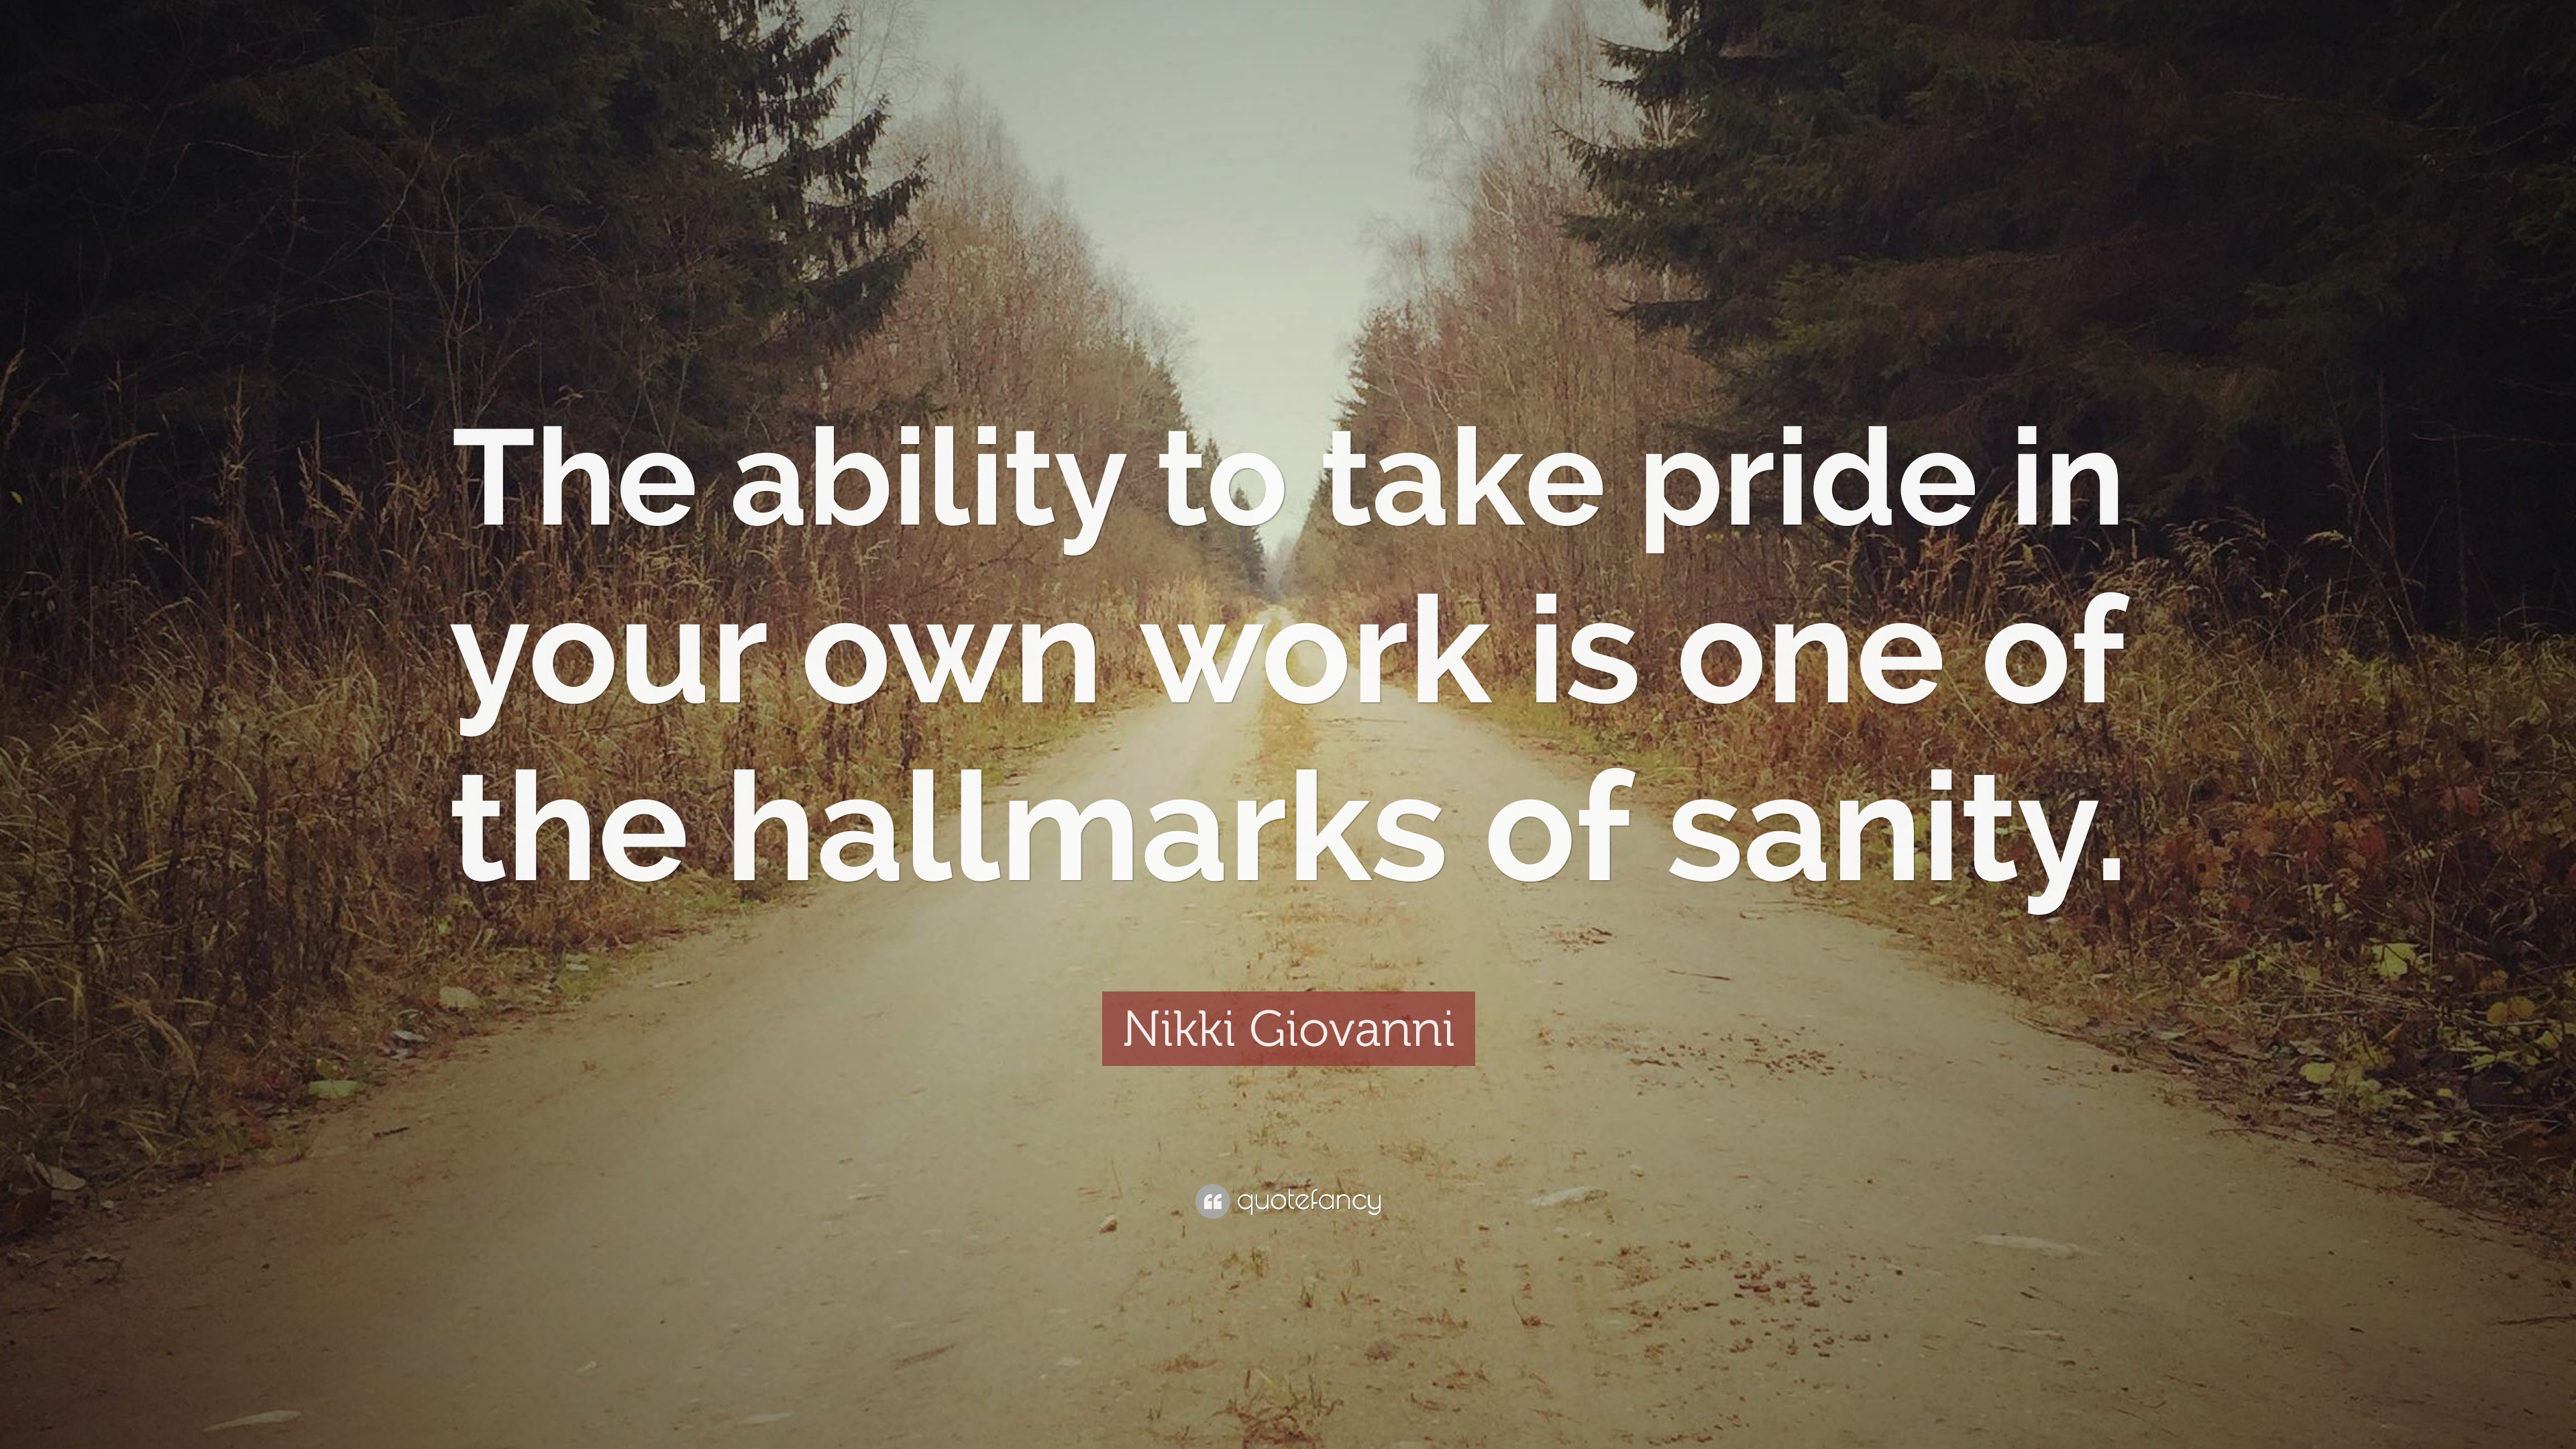 Nikki Giovanni Quote The Ability To Take Pride In Your Own Work Is